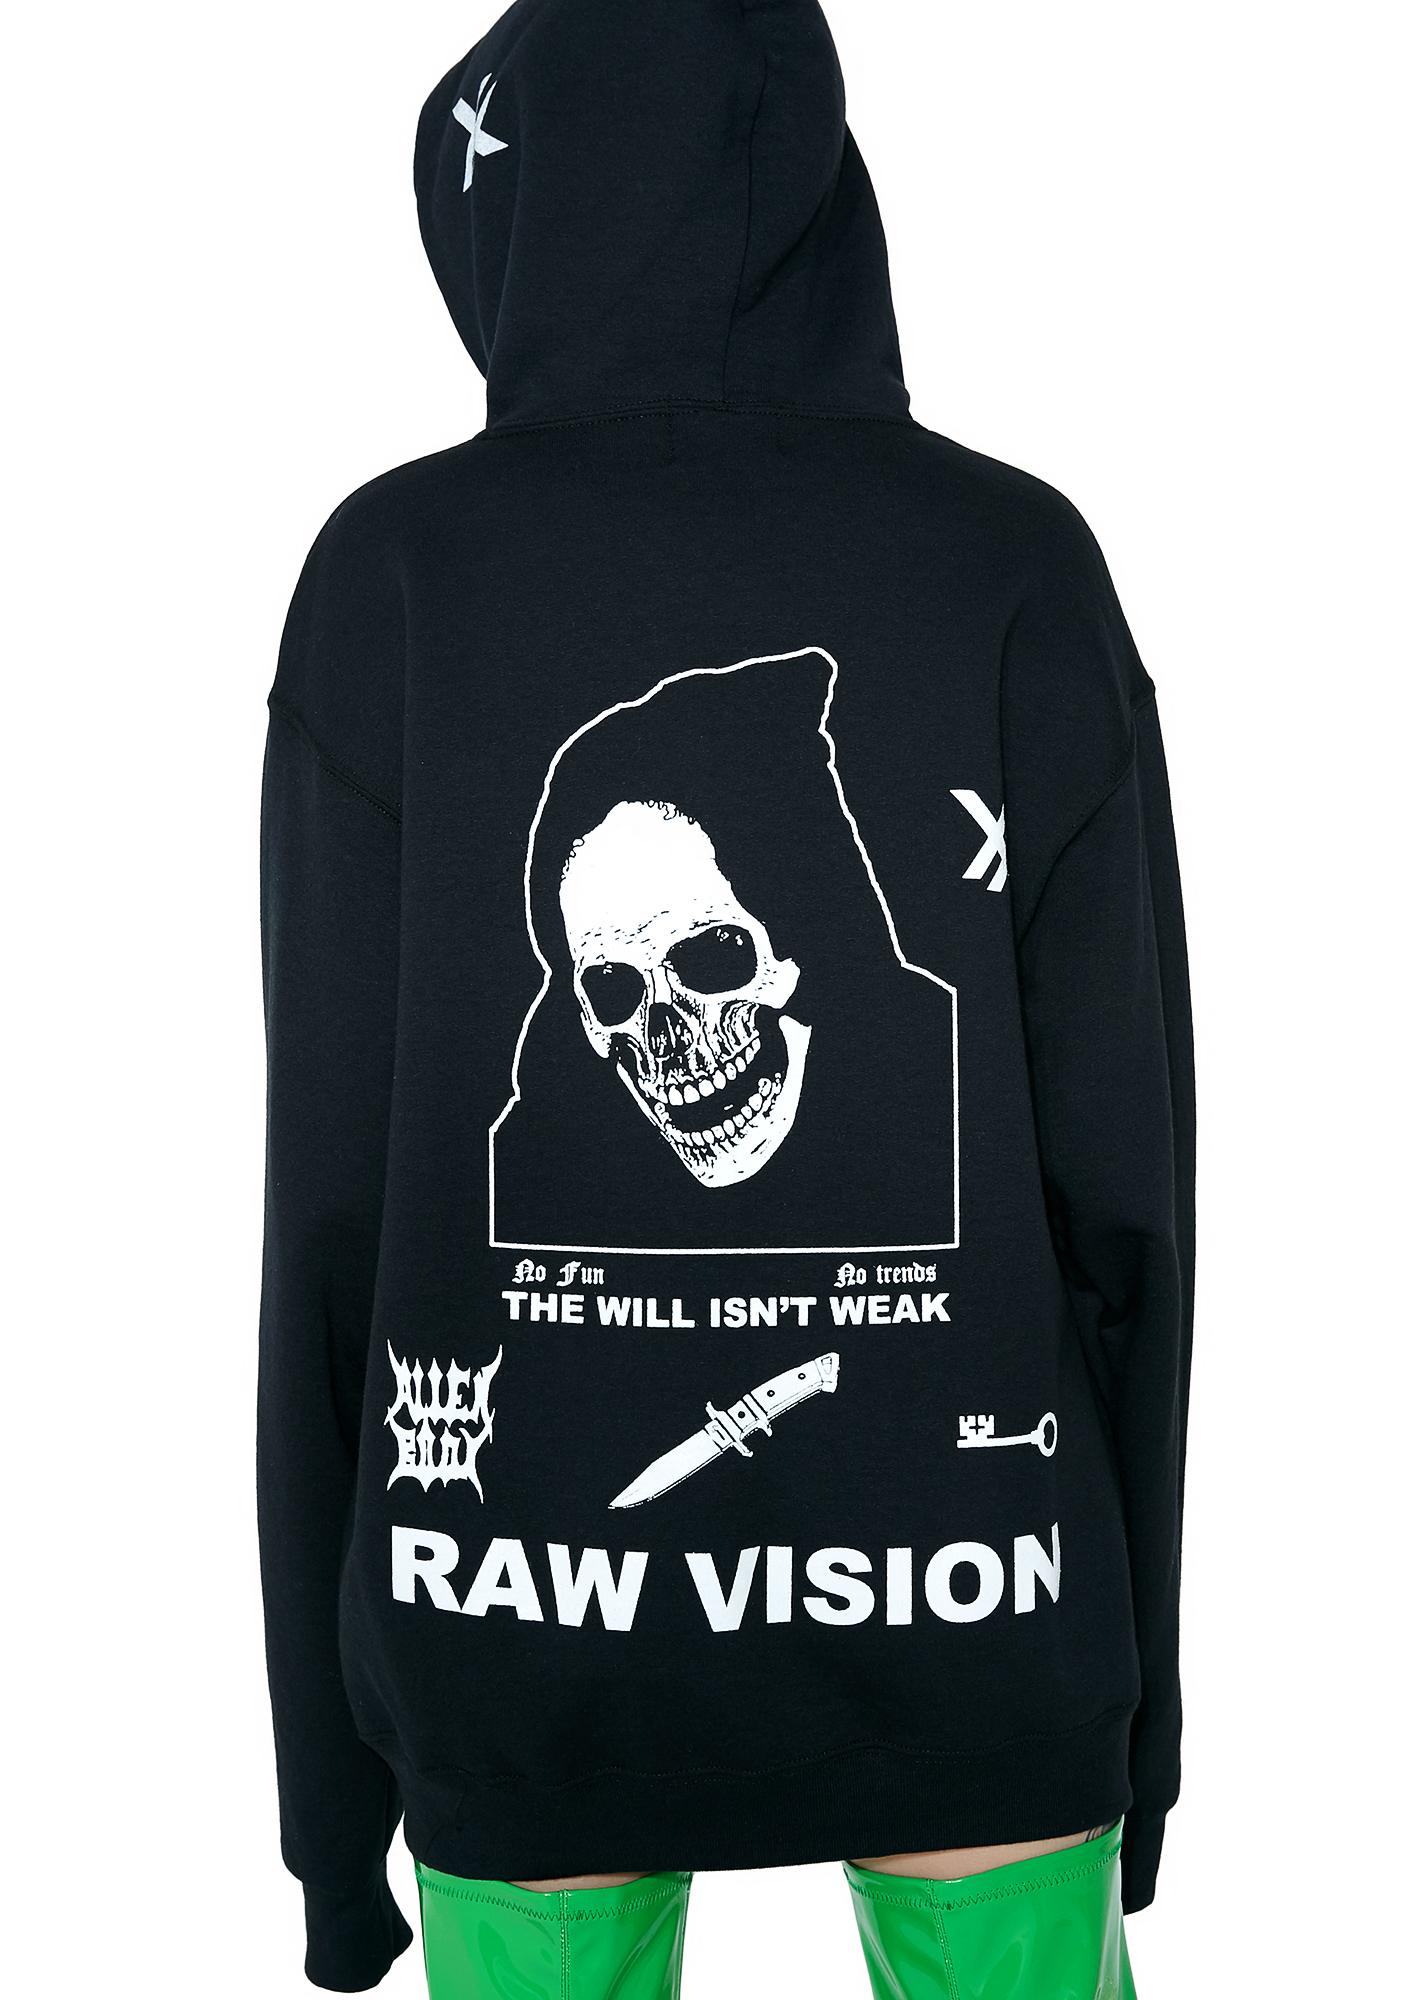 Distorted View Graphic Hoodie